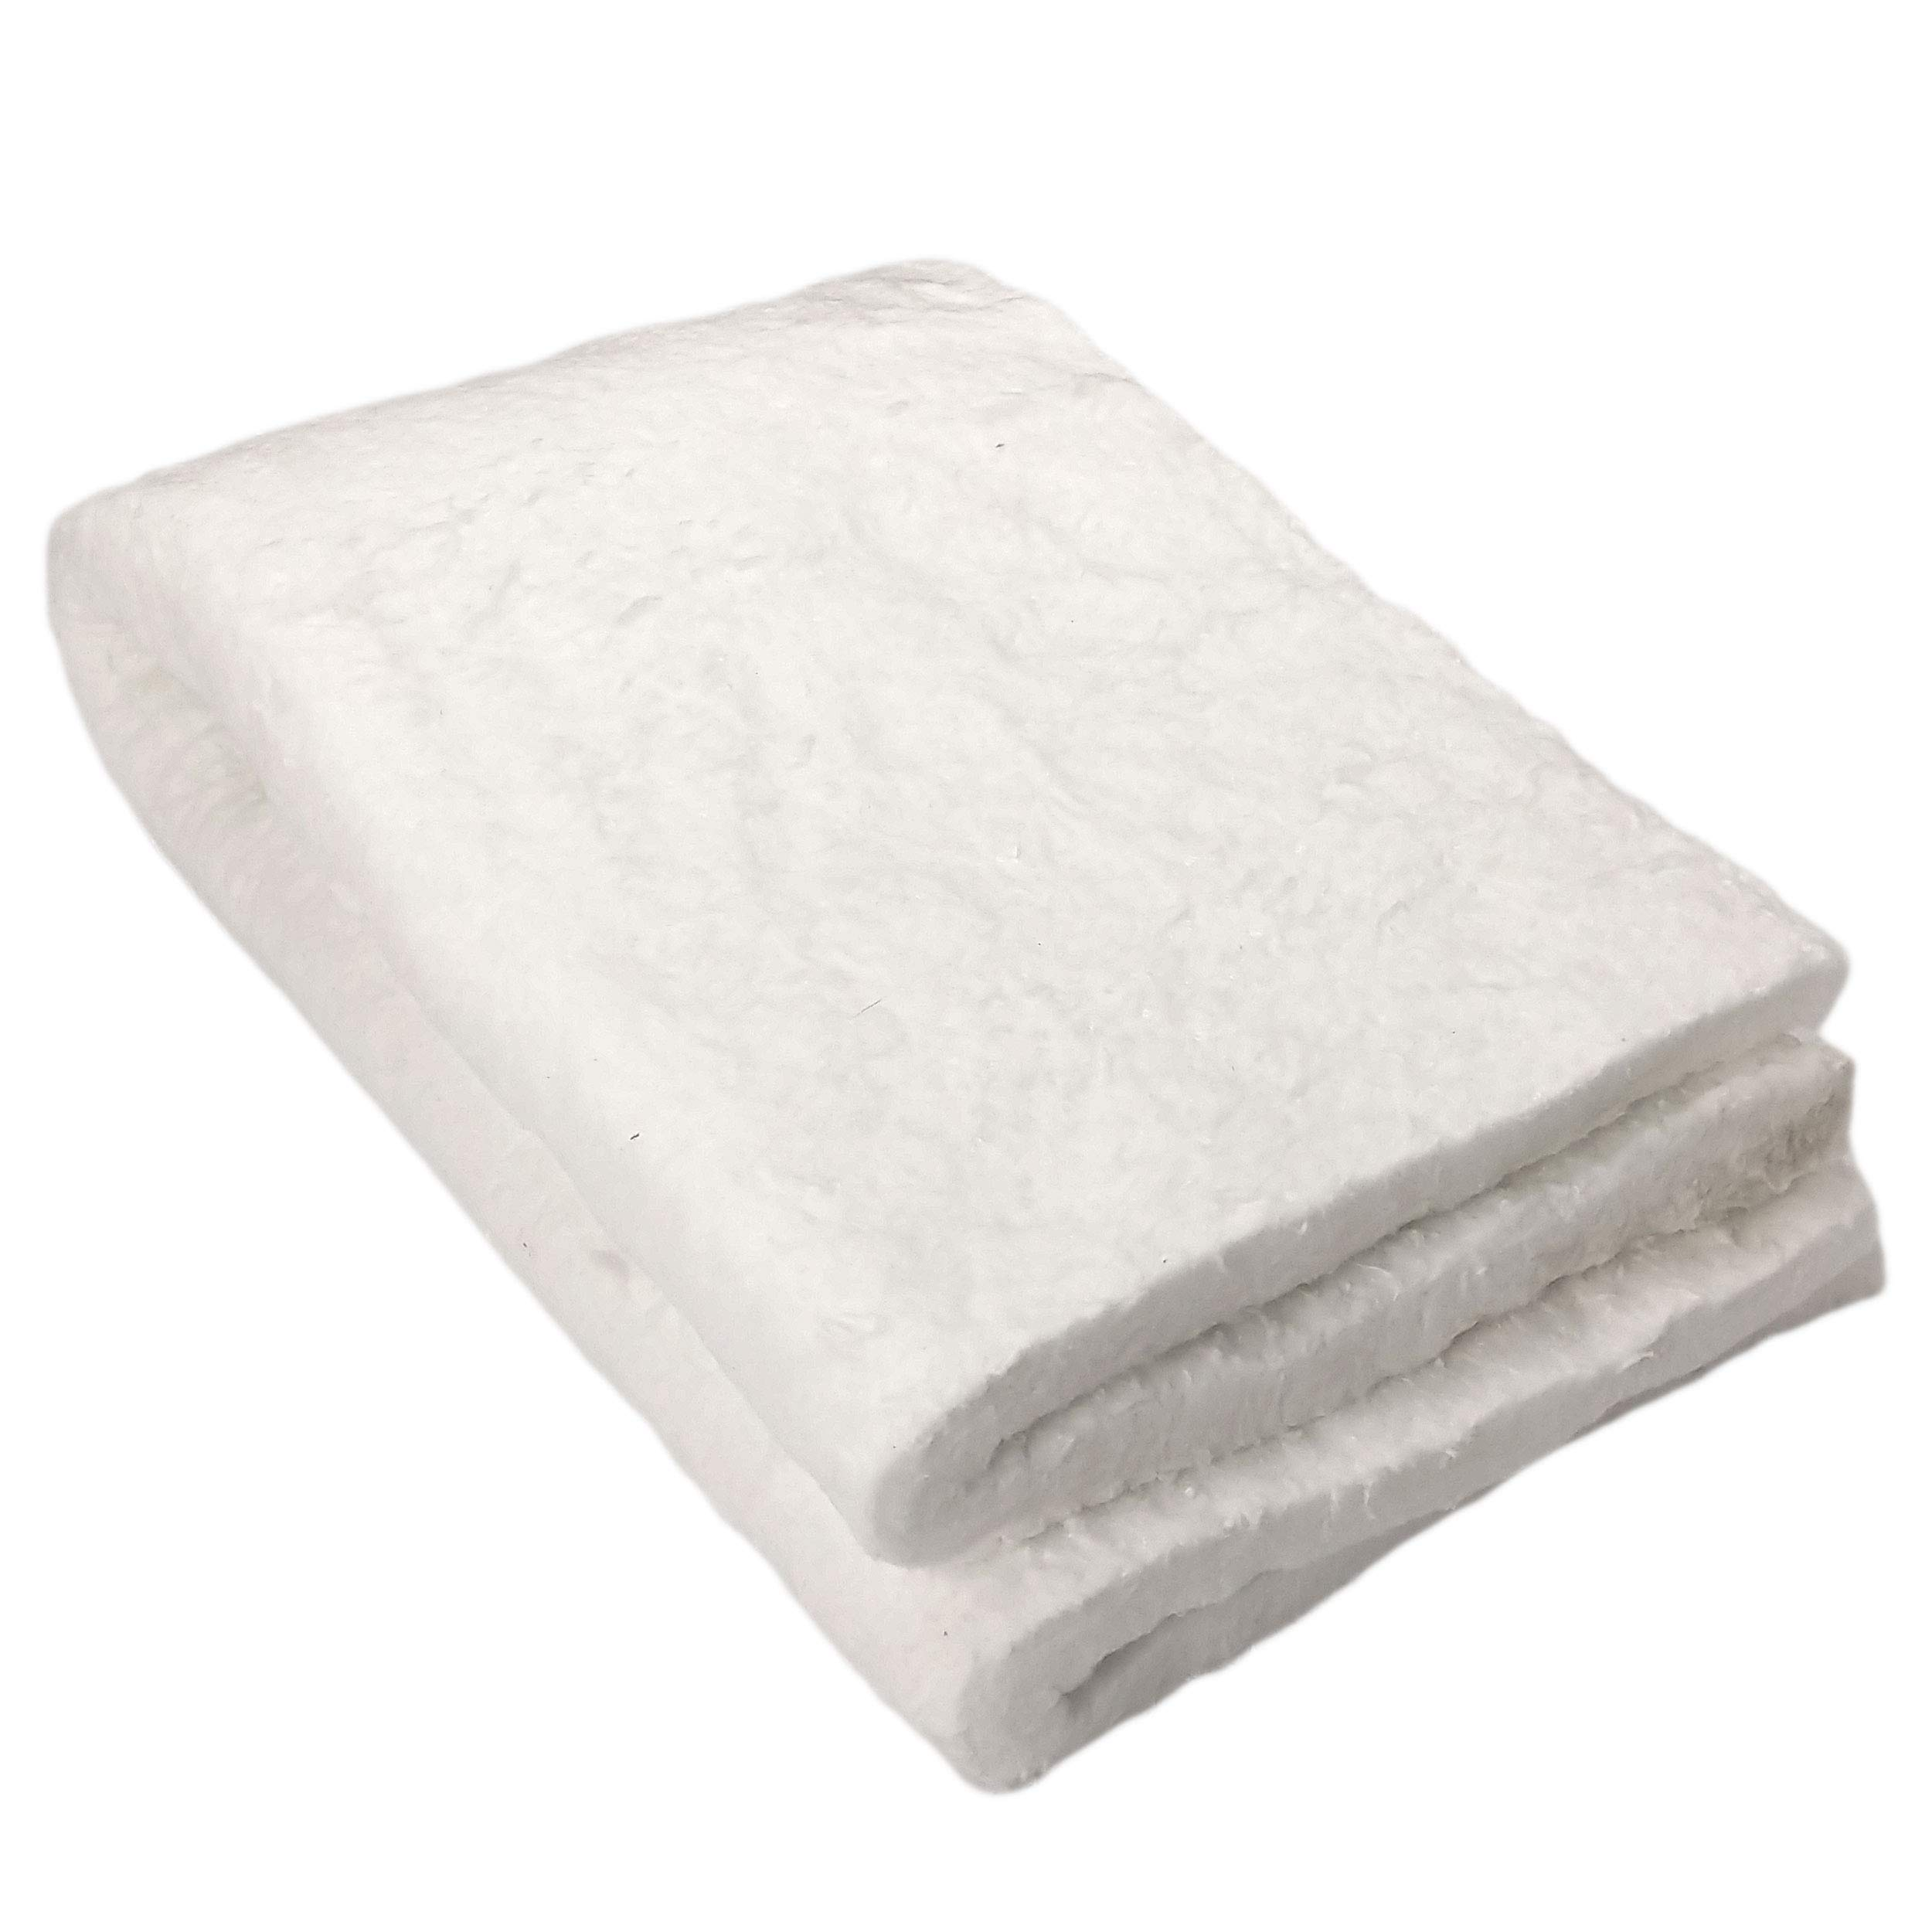 Lynn Manufacturing Replacement SBI Baffle Insulation Blanket for Osburn PL39047 by Lynn Manufacturing